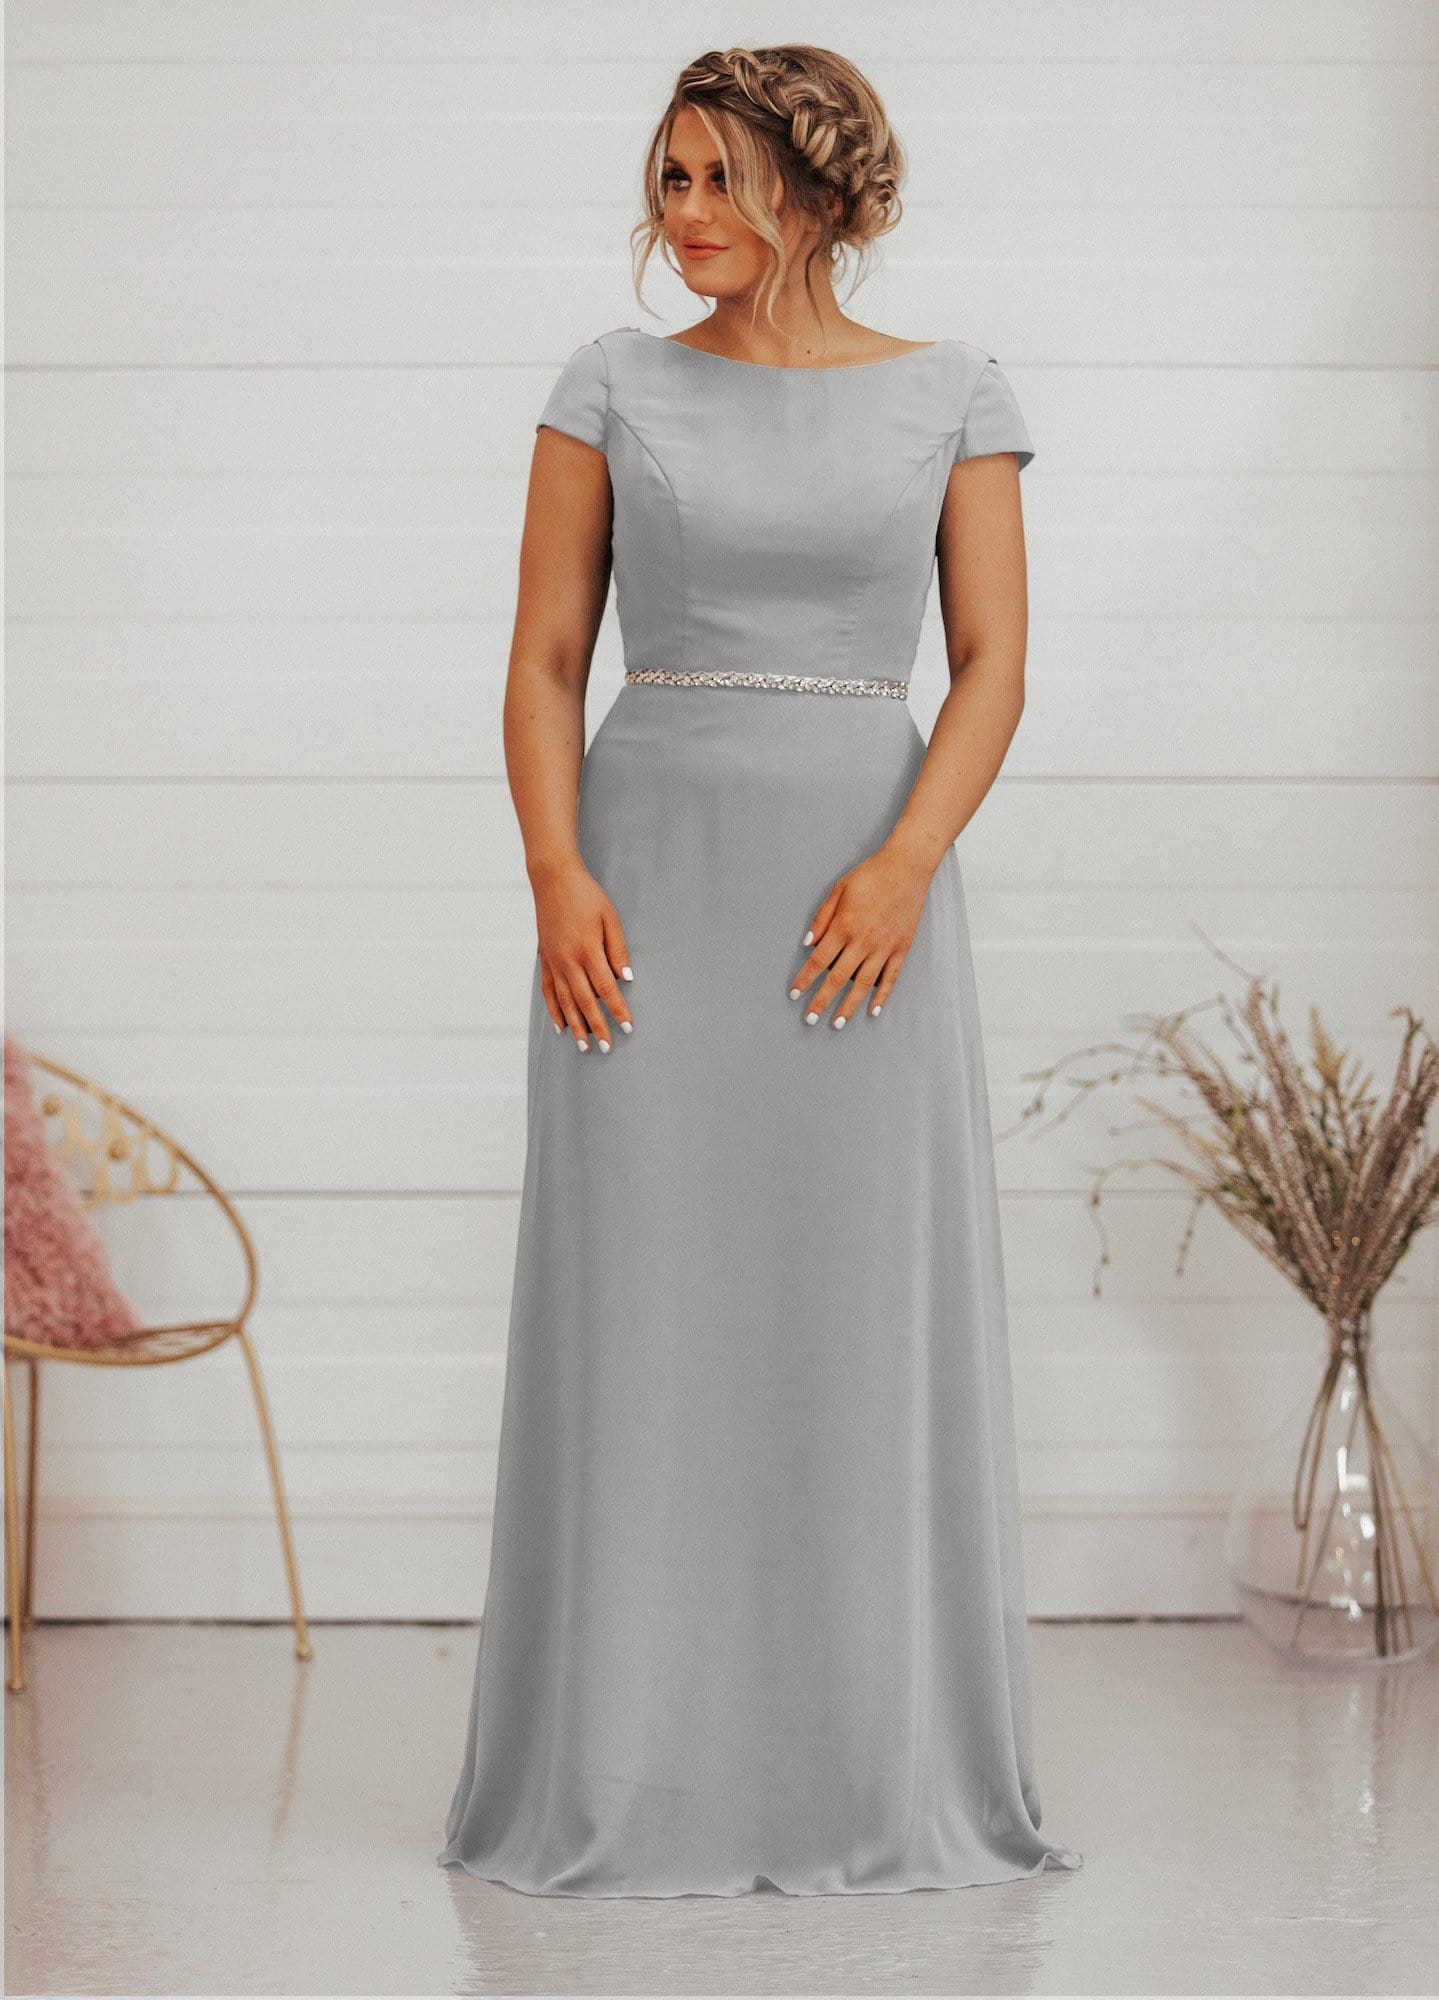 Bailie Dress | Capped Sleeve Cowl Back Bridesmaid Dress - That Special Day Bridal Warehouse